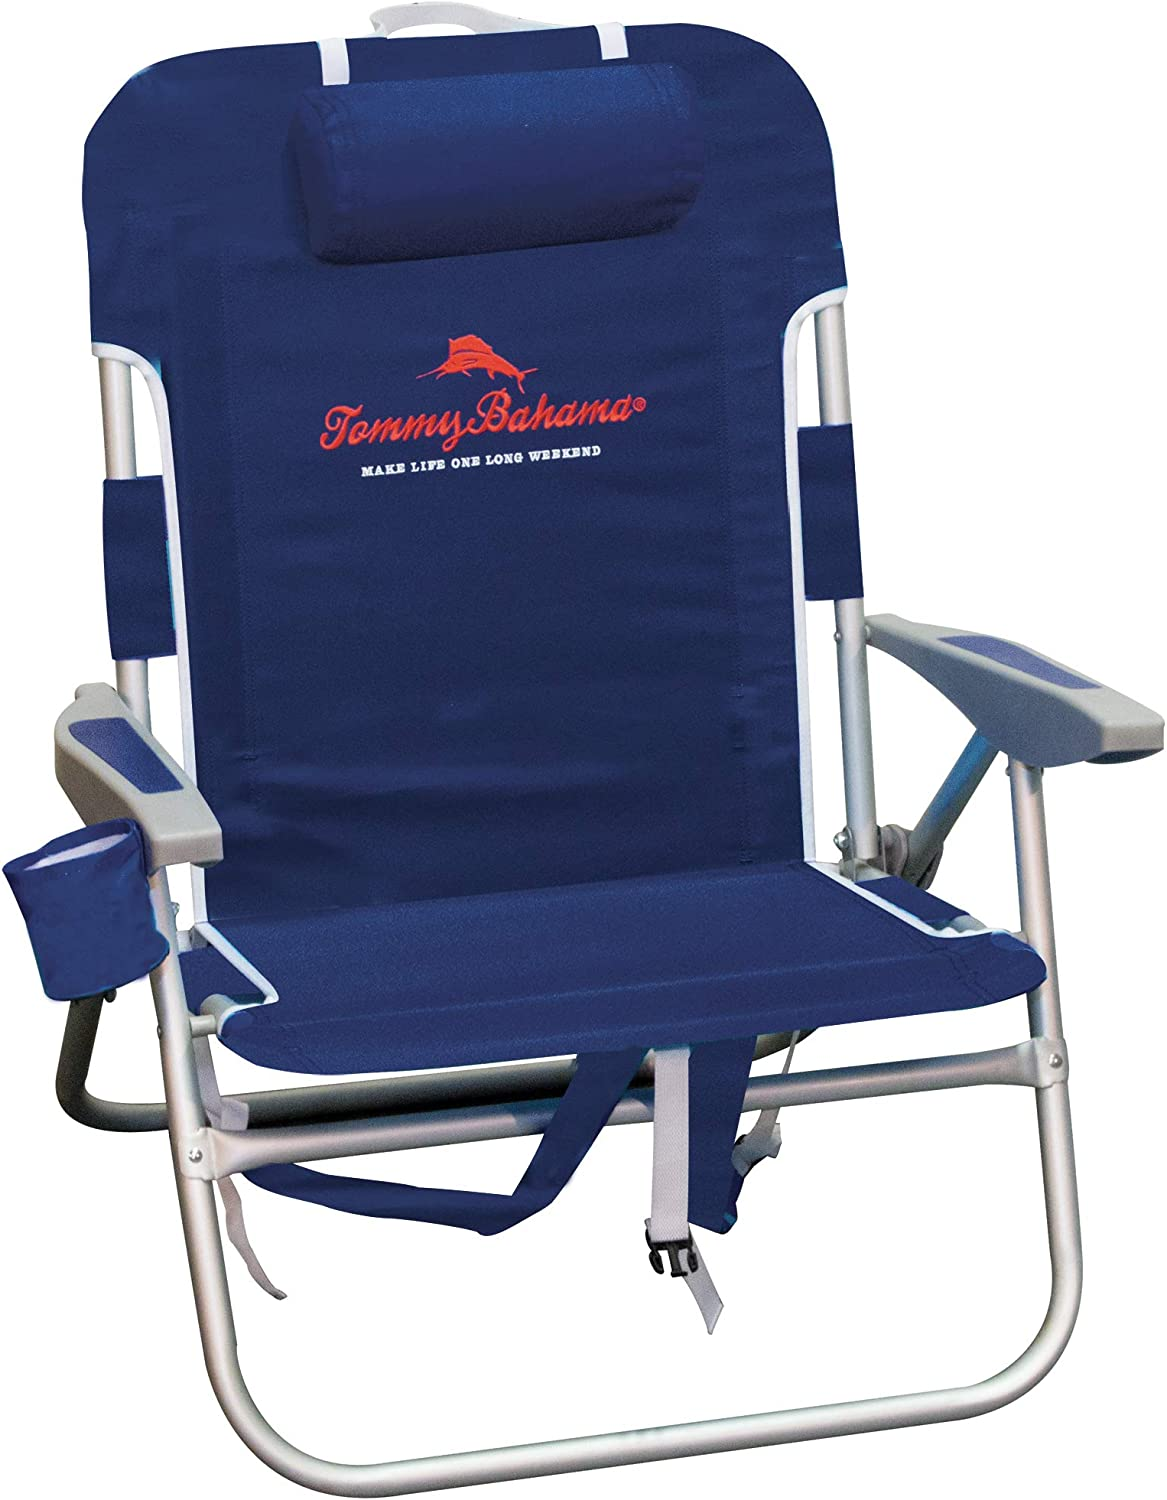 Backpacking Beach Chair for Big Guys